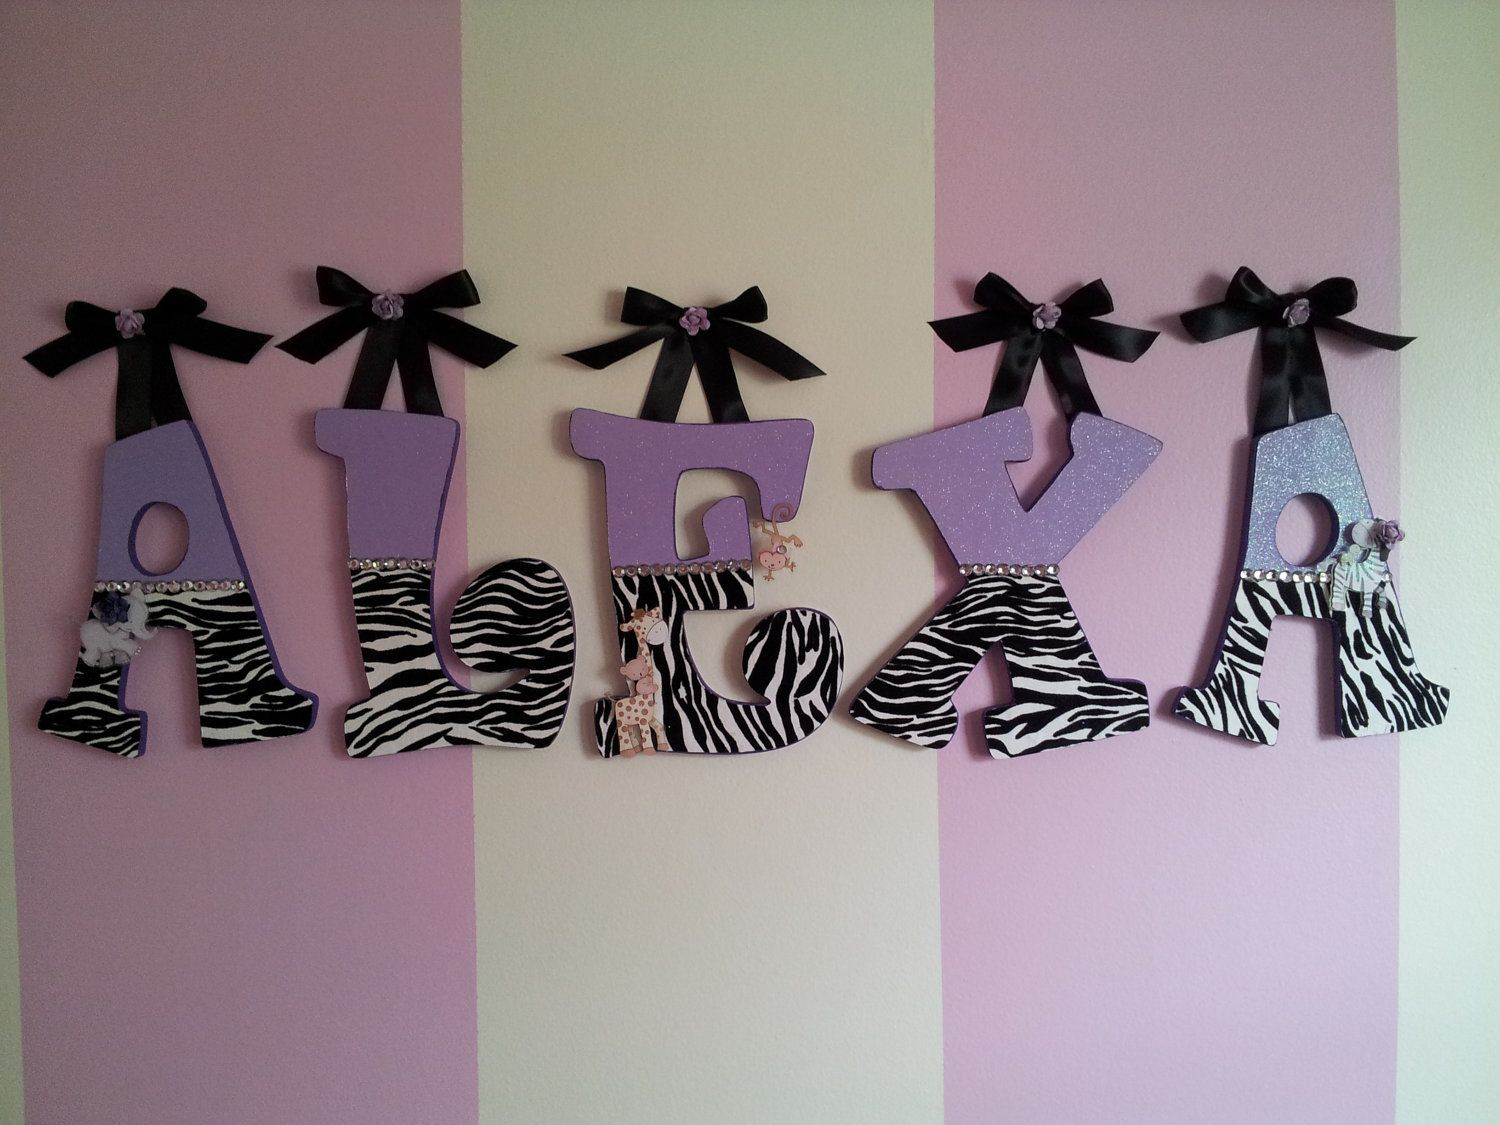 Leopard Print Bedroom Accessories Zebra Print Bedroom Accessories